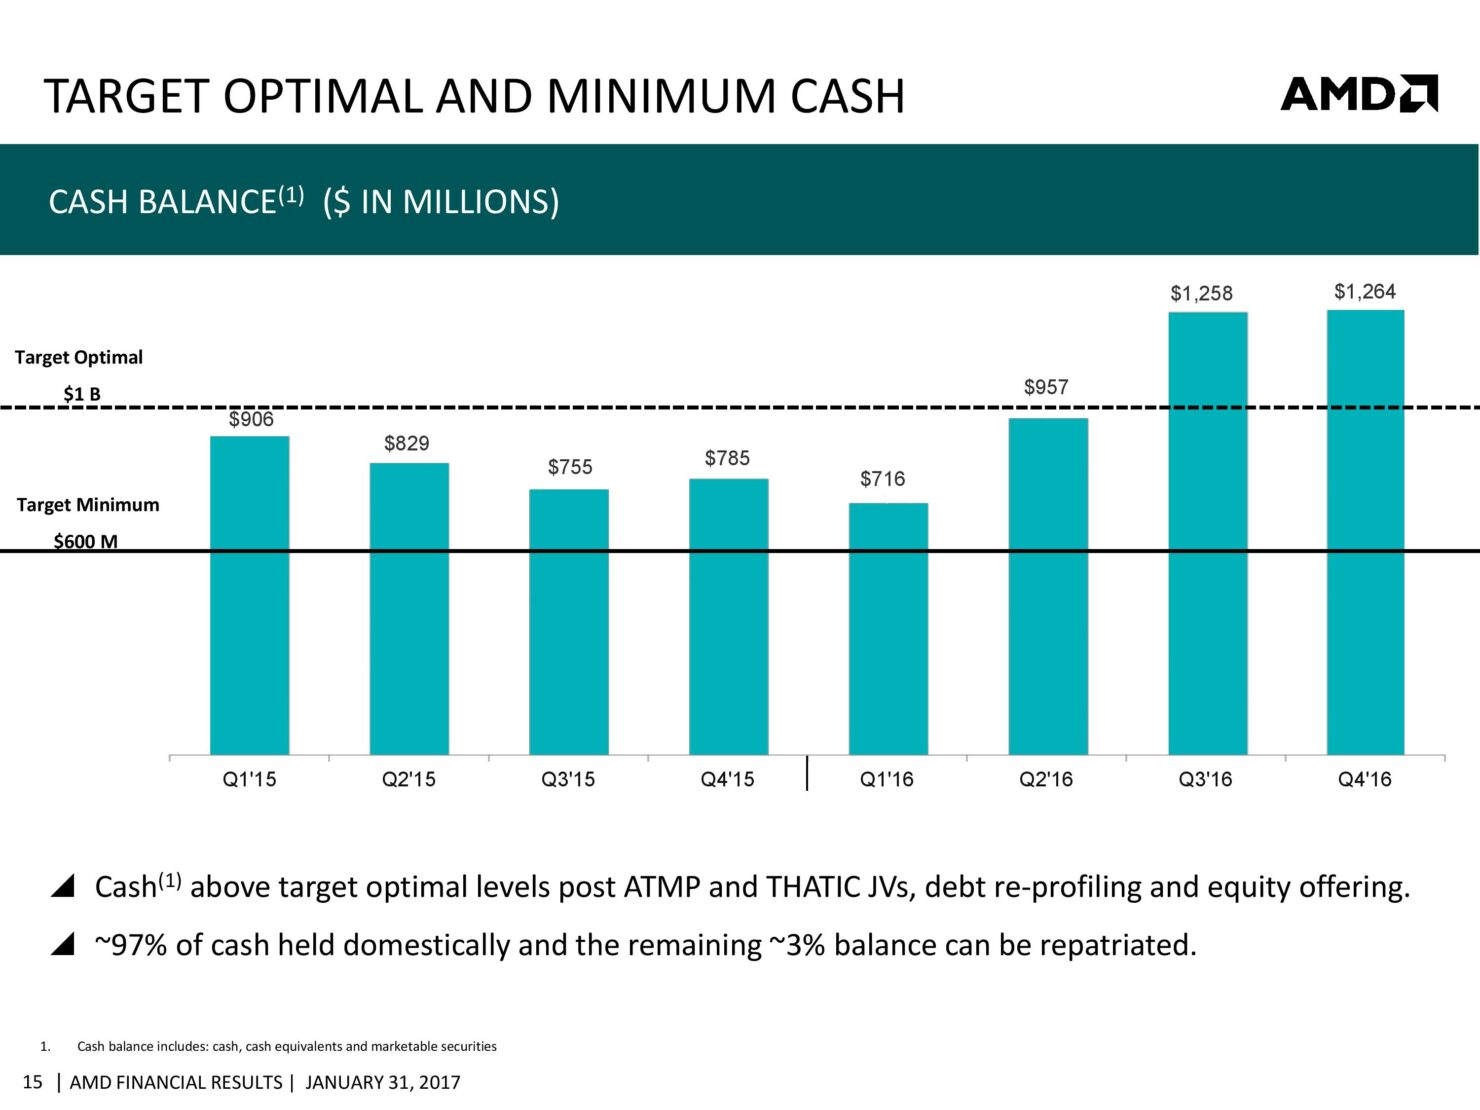 amd-cfo-commentary-slides-q4-16-page-015